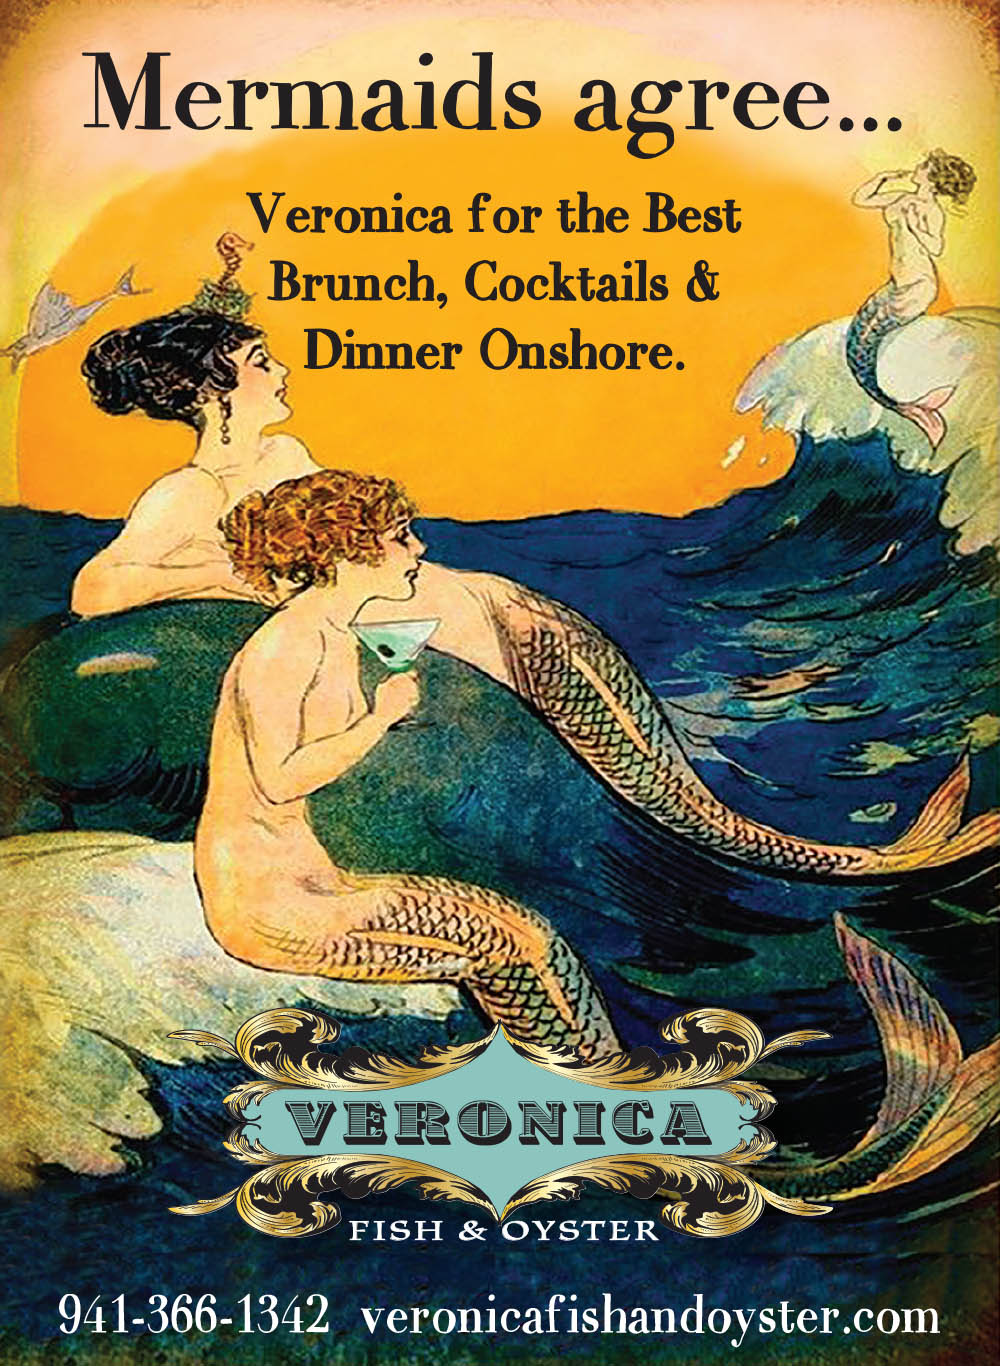 Veronica Fish & Oyster - Ad